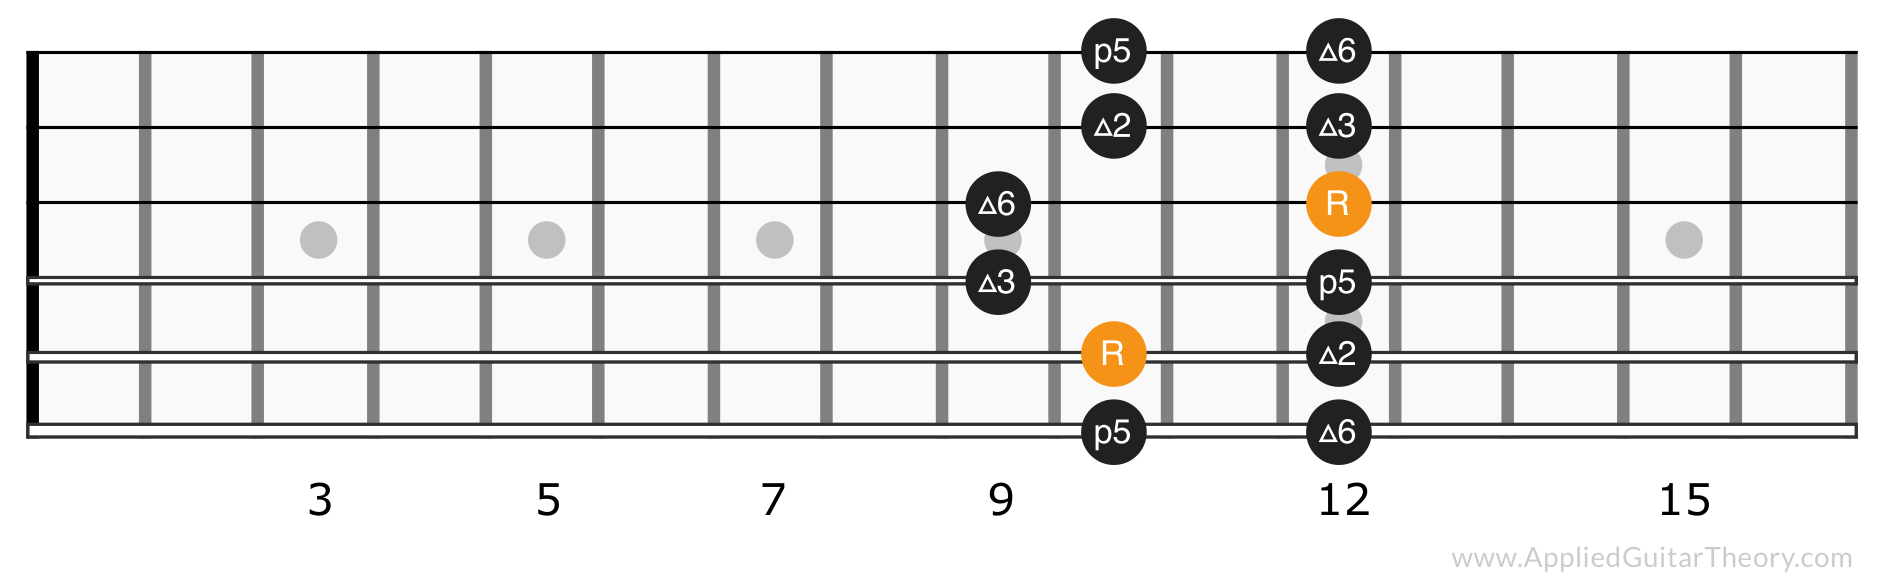 Major pentatonic scale position 4